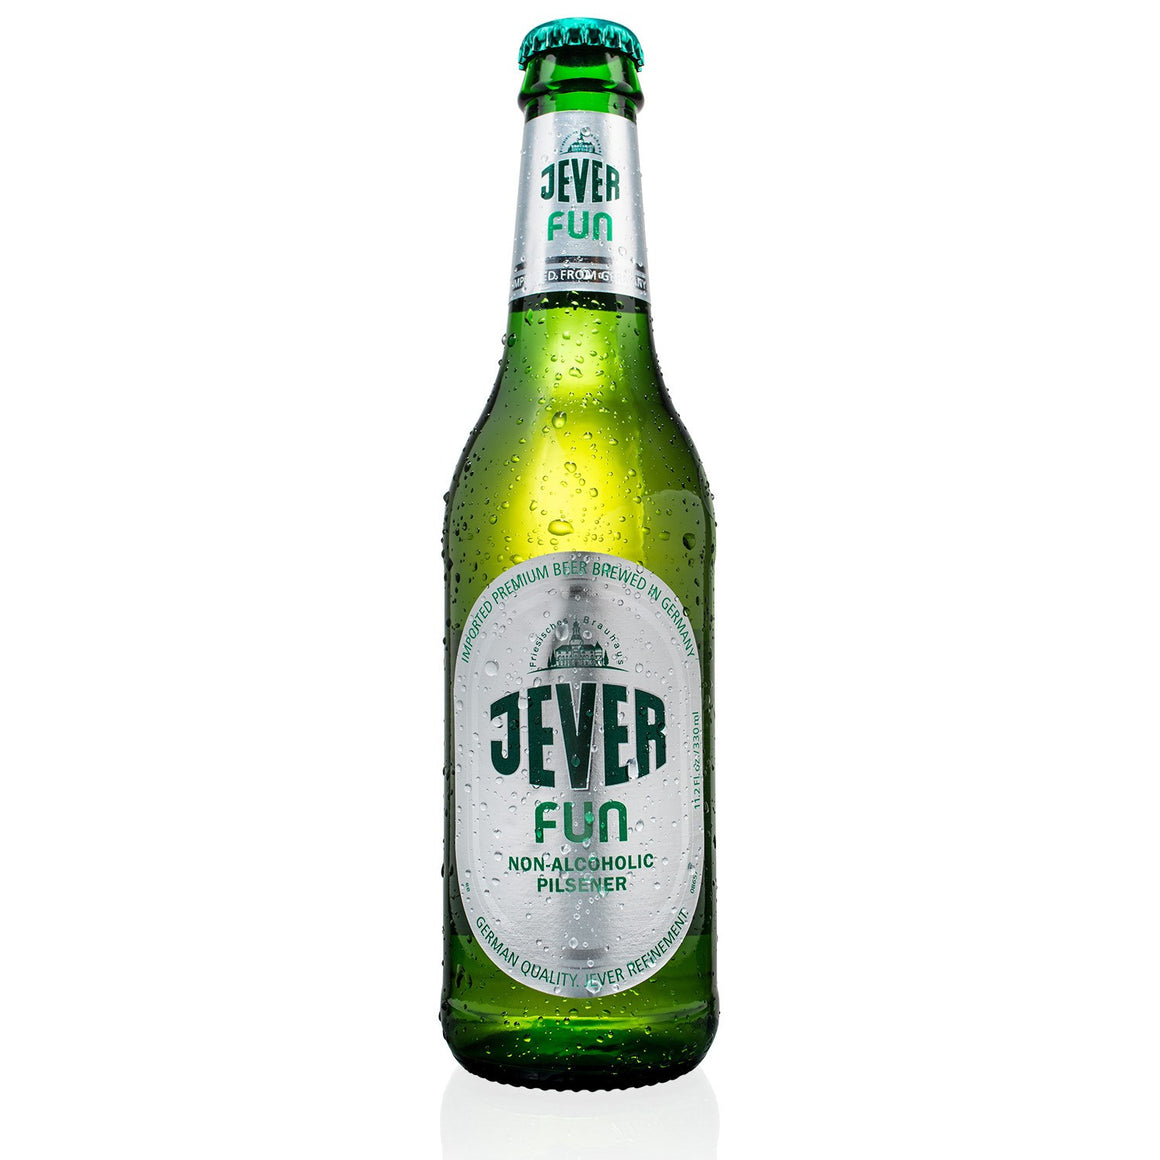 Jever - Fun - Alcohol Free Pilsner